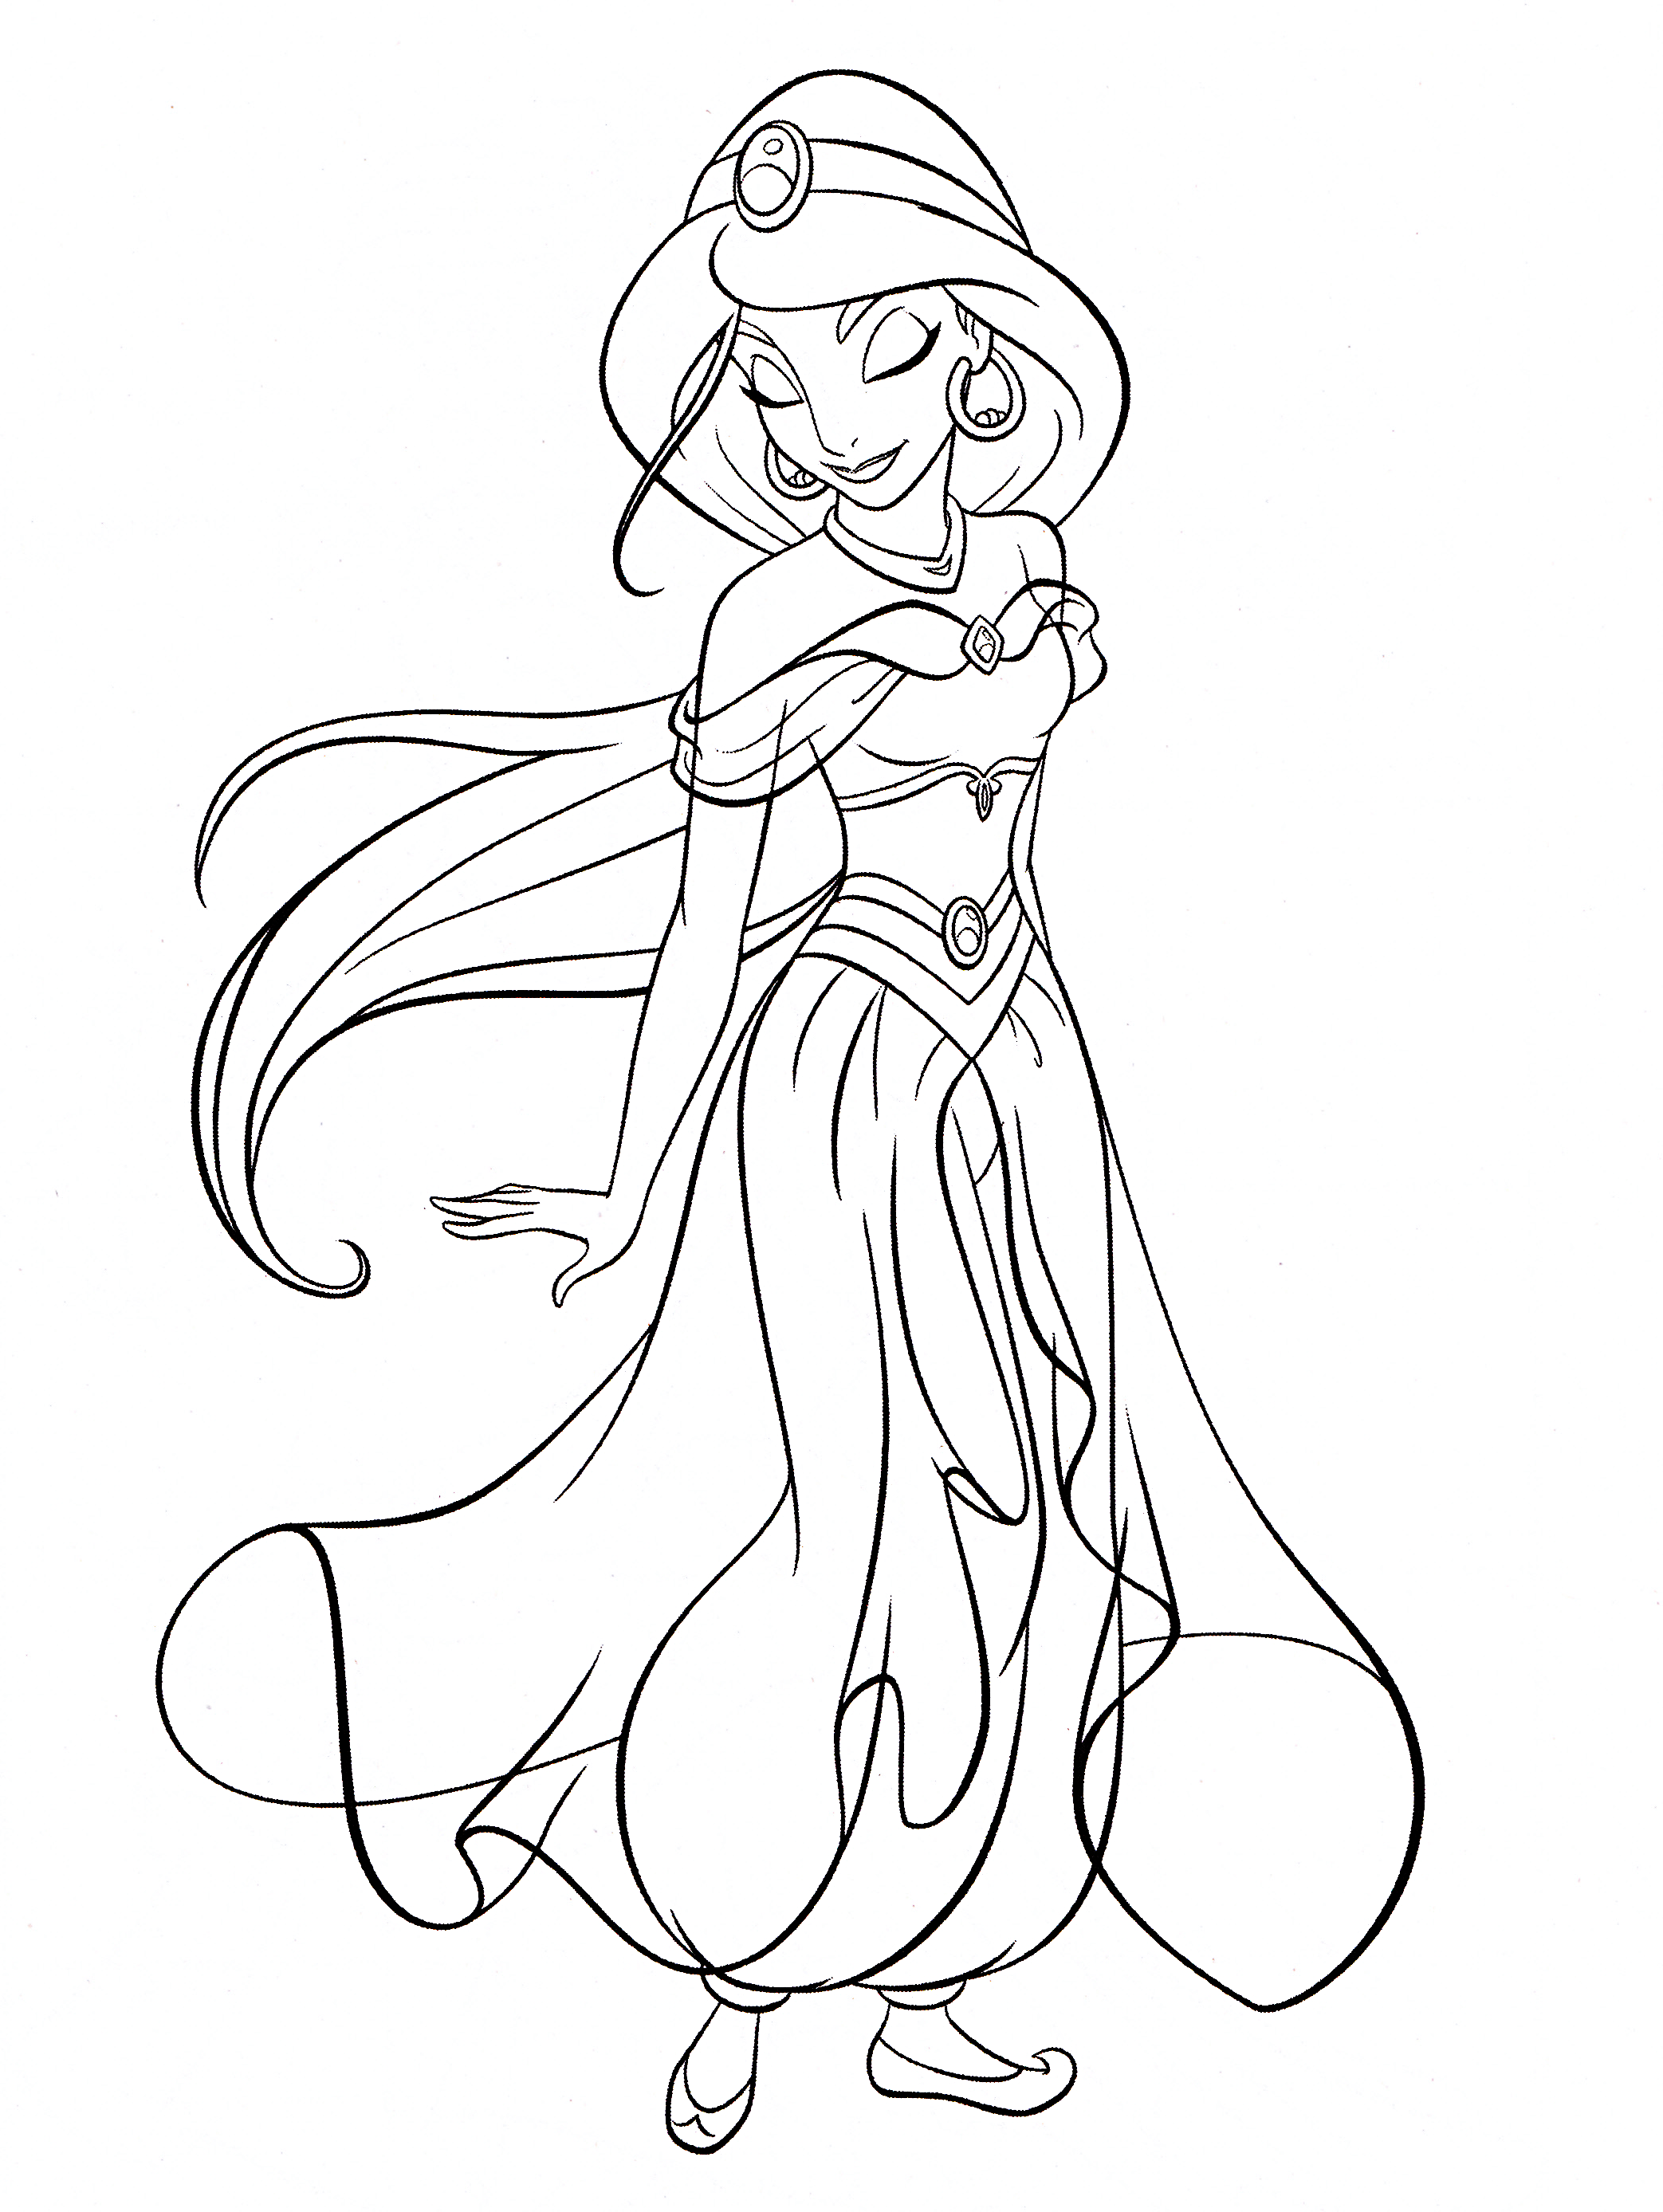 jasmine online coloring pages - photo#26